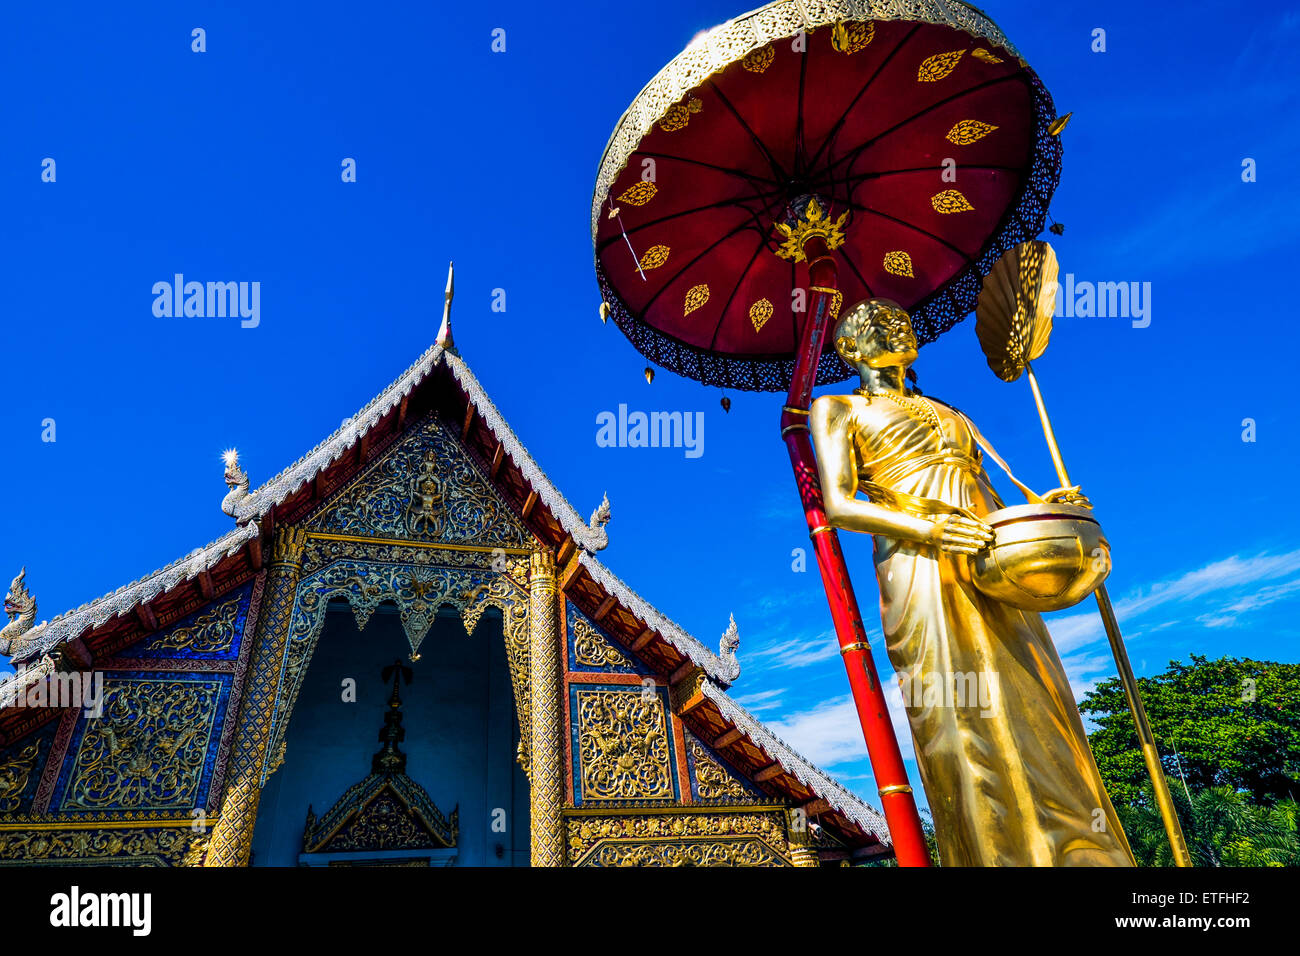 Asia. Thailand, Chiang Mai. Wat Phra Singh.Golden statue of a revered monk. - Stock Image